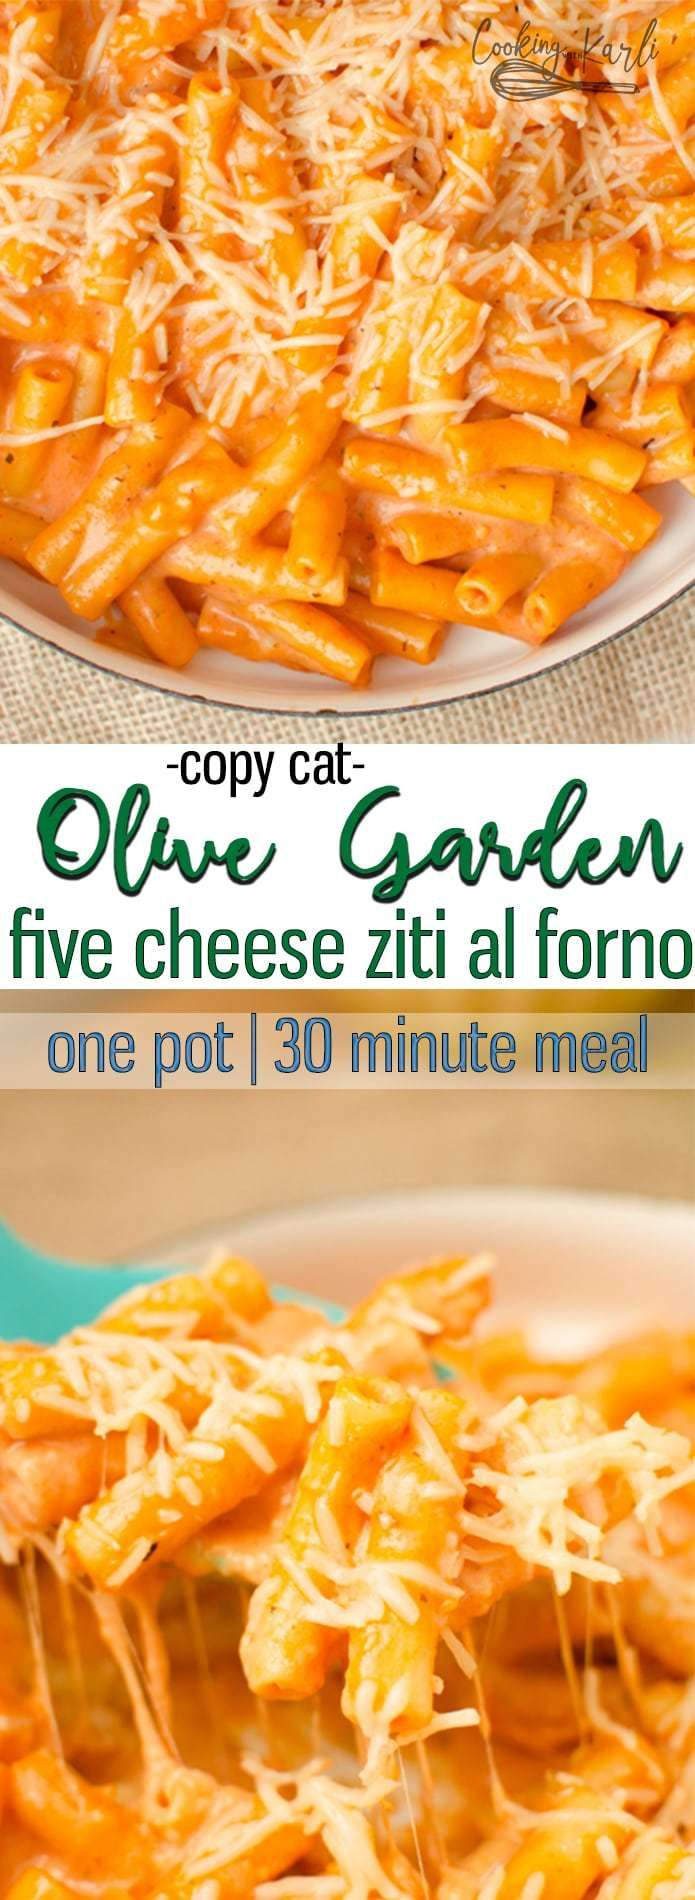 One Pot Creamy Ziti Pasta tastes even better than Ziti dishes you'd order from a restaurant! This One Pot meal is a fast, easy, dump and go dinner that won't leave you with a sink full of dishes! All it takes is a handful of ingredients to create this Pasta dish. |Cooking with Karli| #zitibake #copycat #olivegarden #creamyziti #onepot #30minmeal #fast #easy #easyonepotmeals